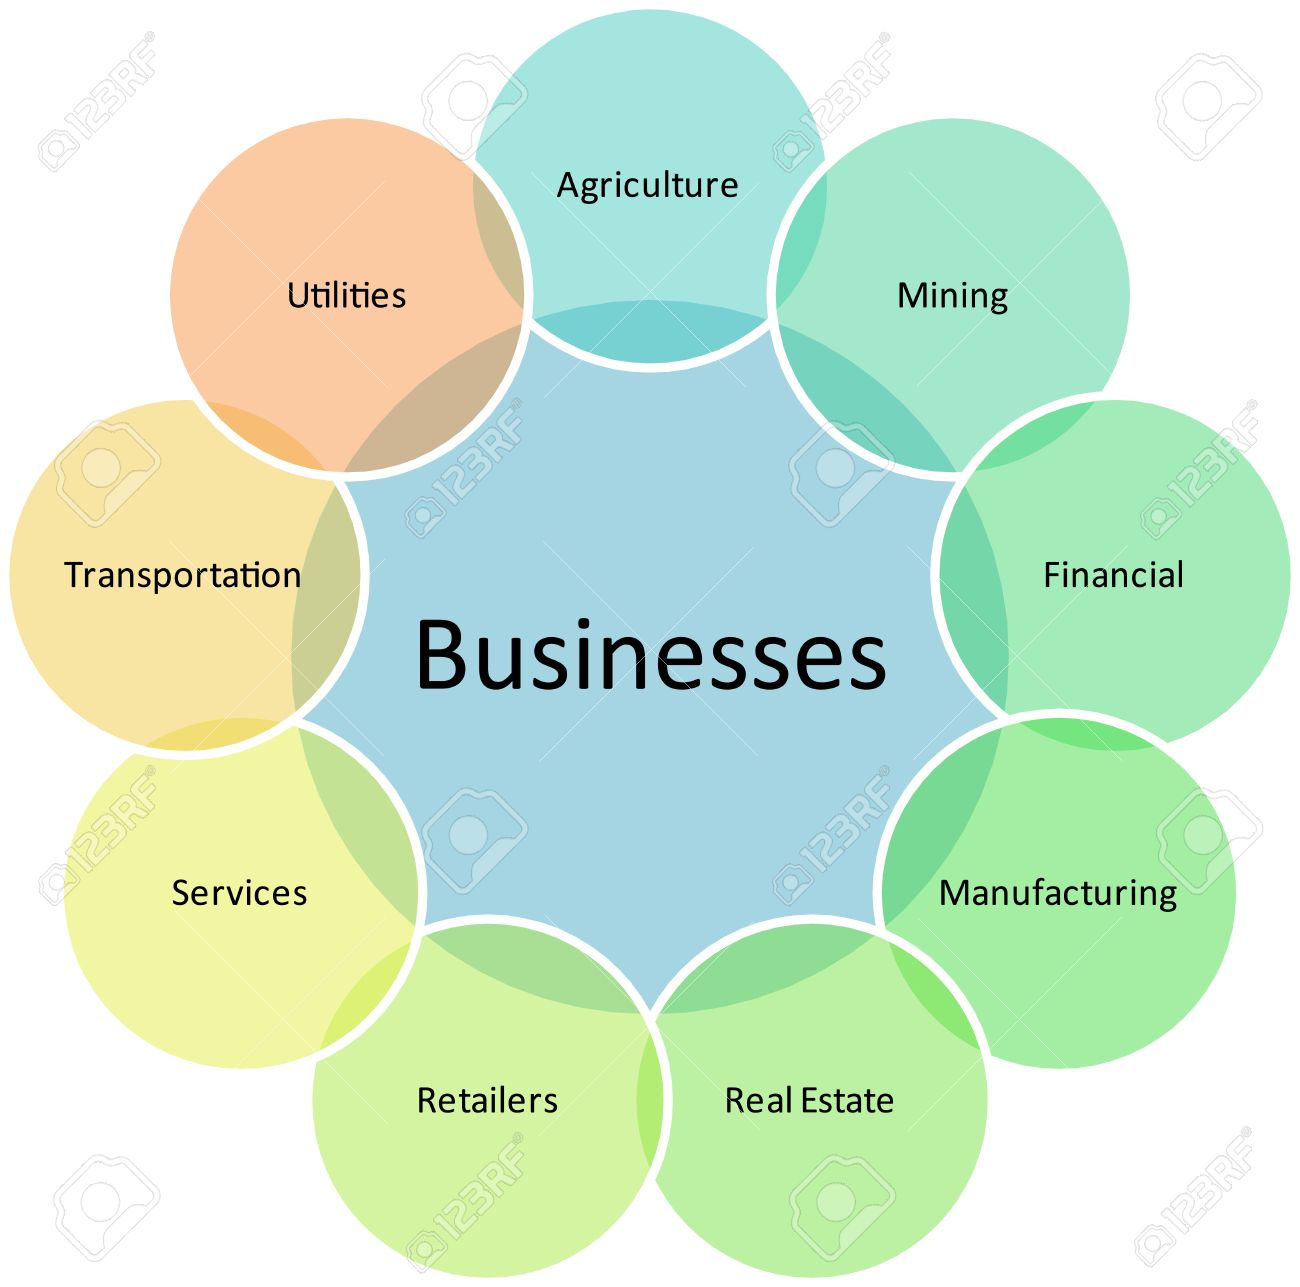 Business types diagram management strategy concept chart business types diagram management strategy concept chart illustration stock illustration 9412605 ccuart Images